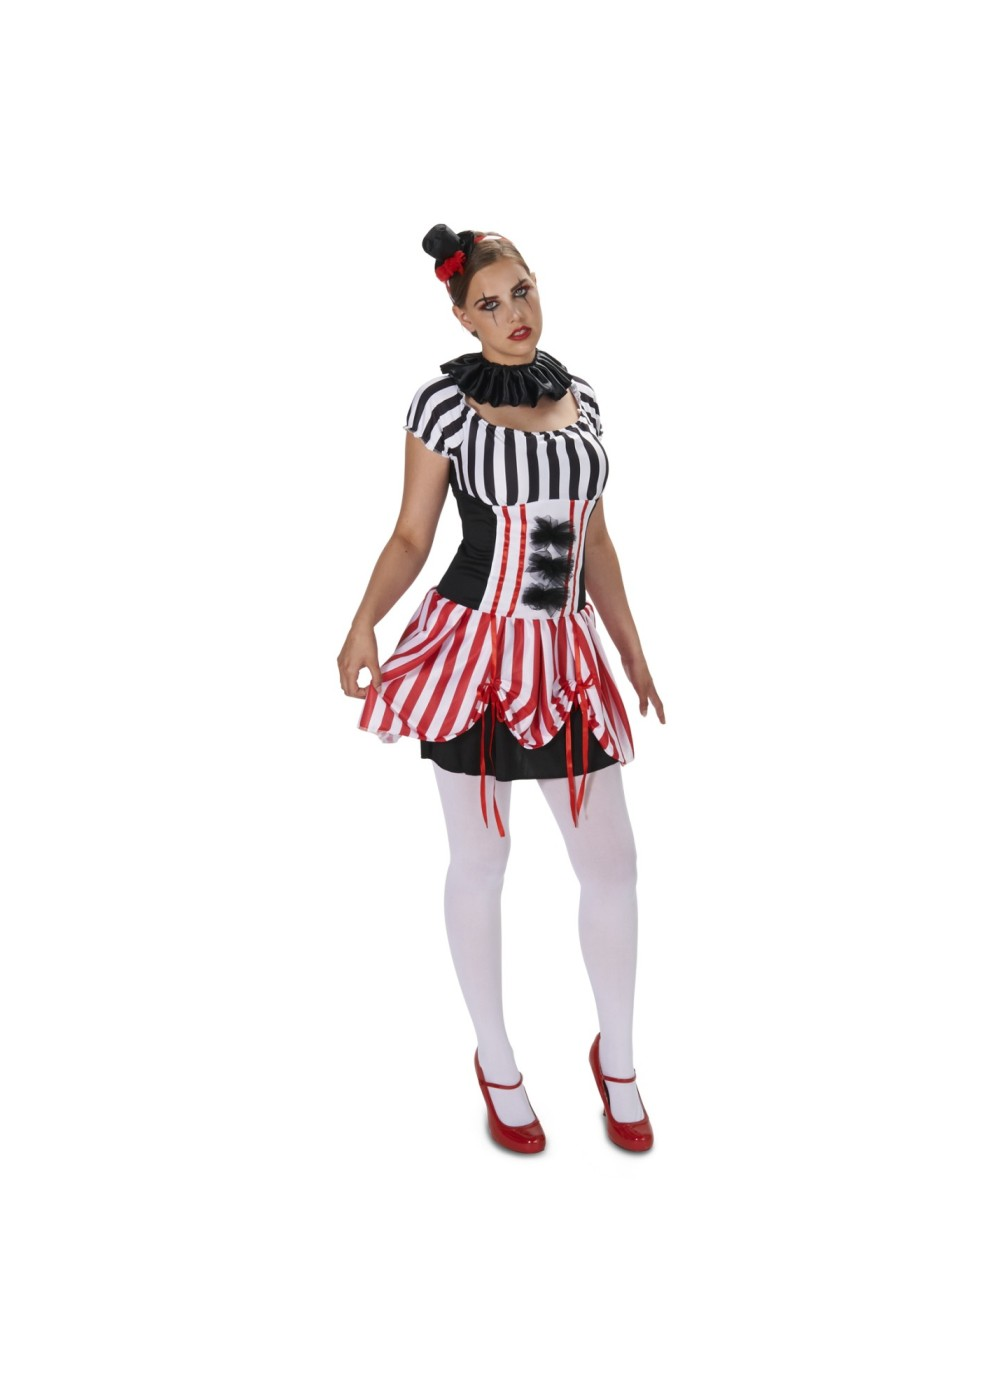 Traveling Circus Carnival Womens Costume  sc 1 st  Wonder Costumes & Traveling Circus Carnival Womens Costume - Scary Costumes